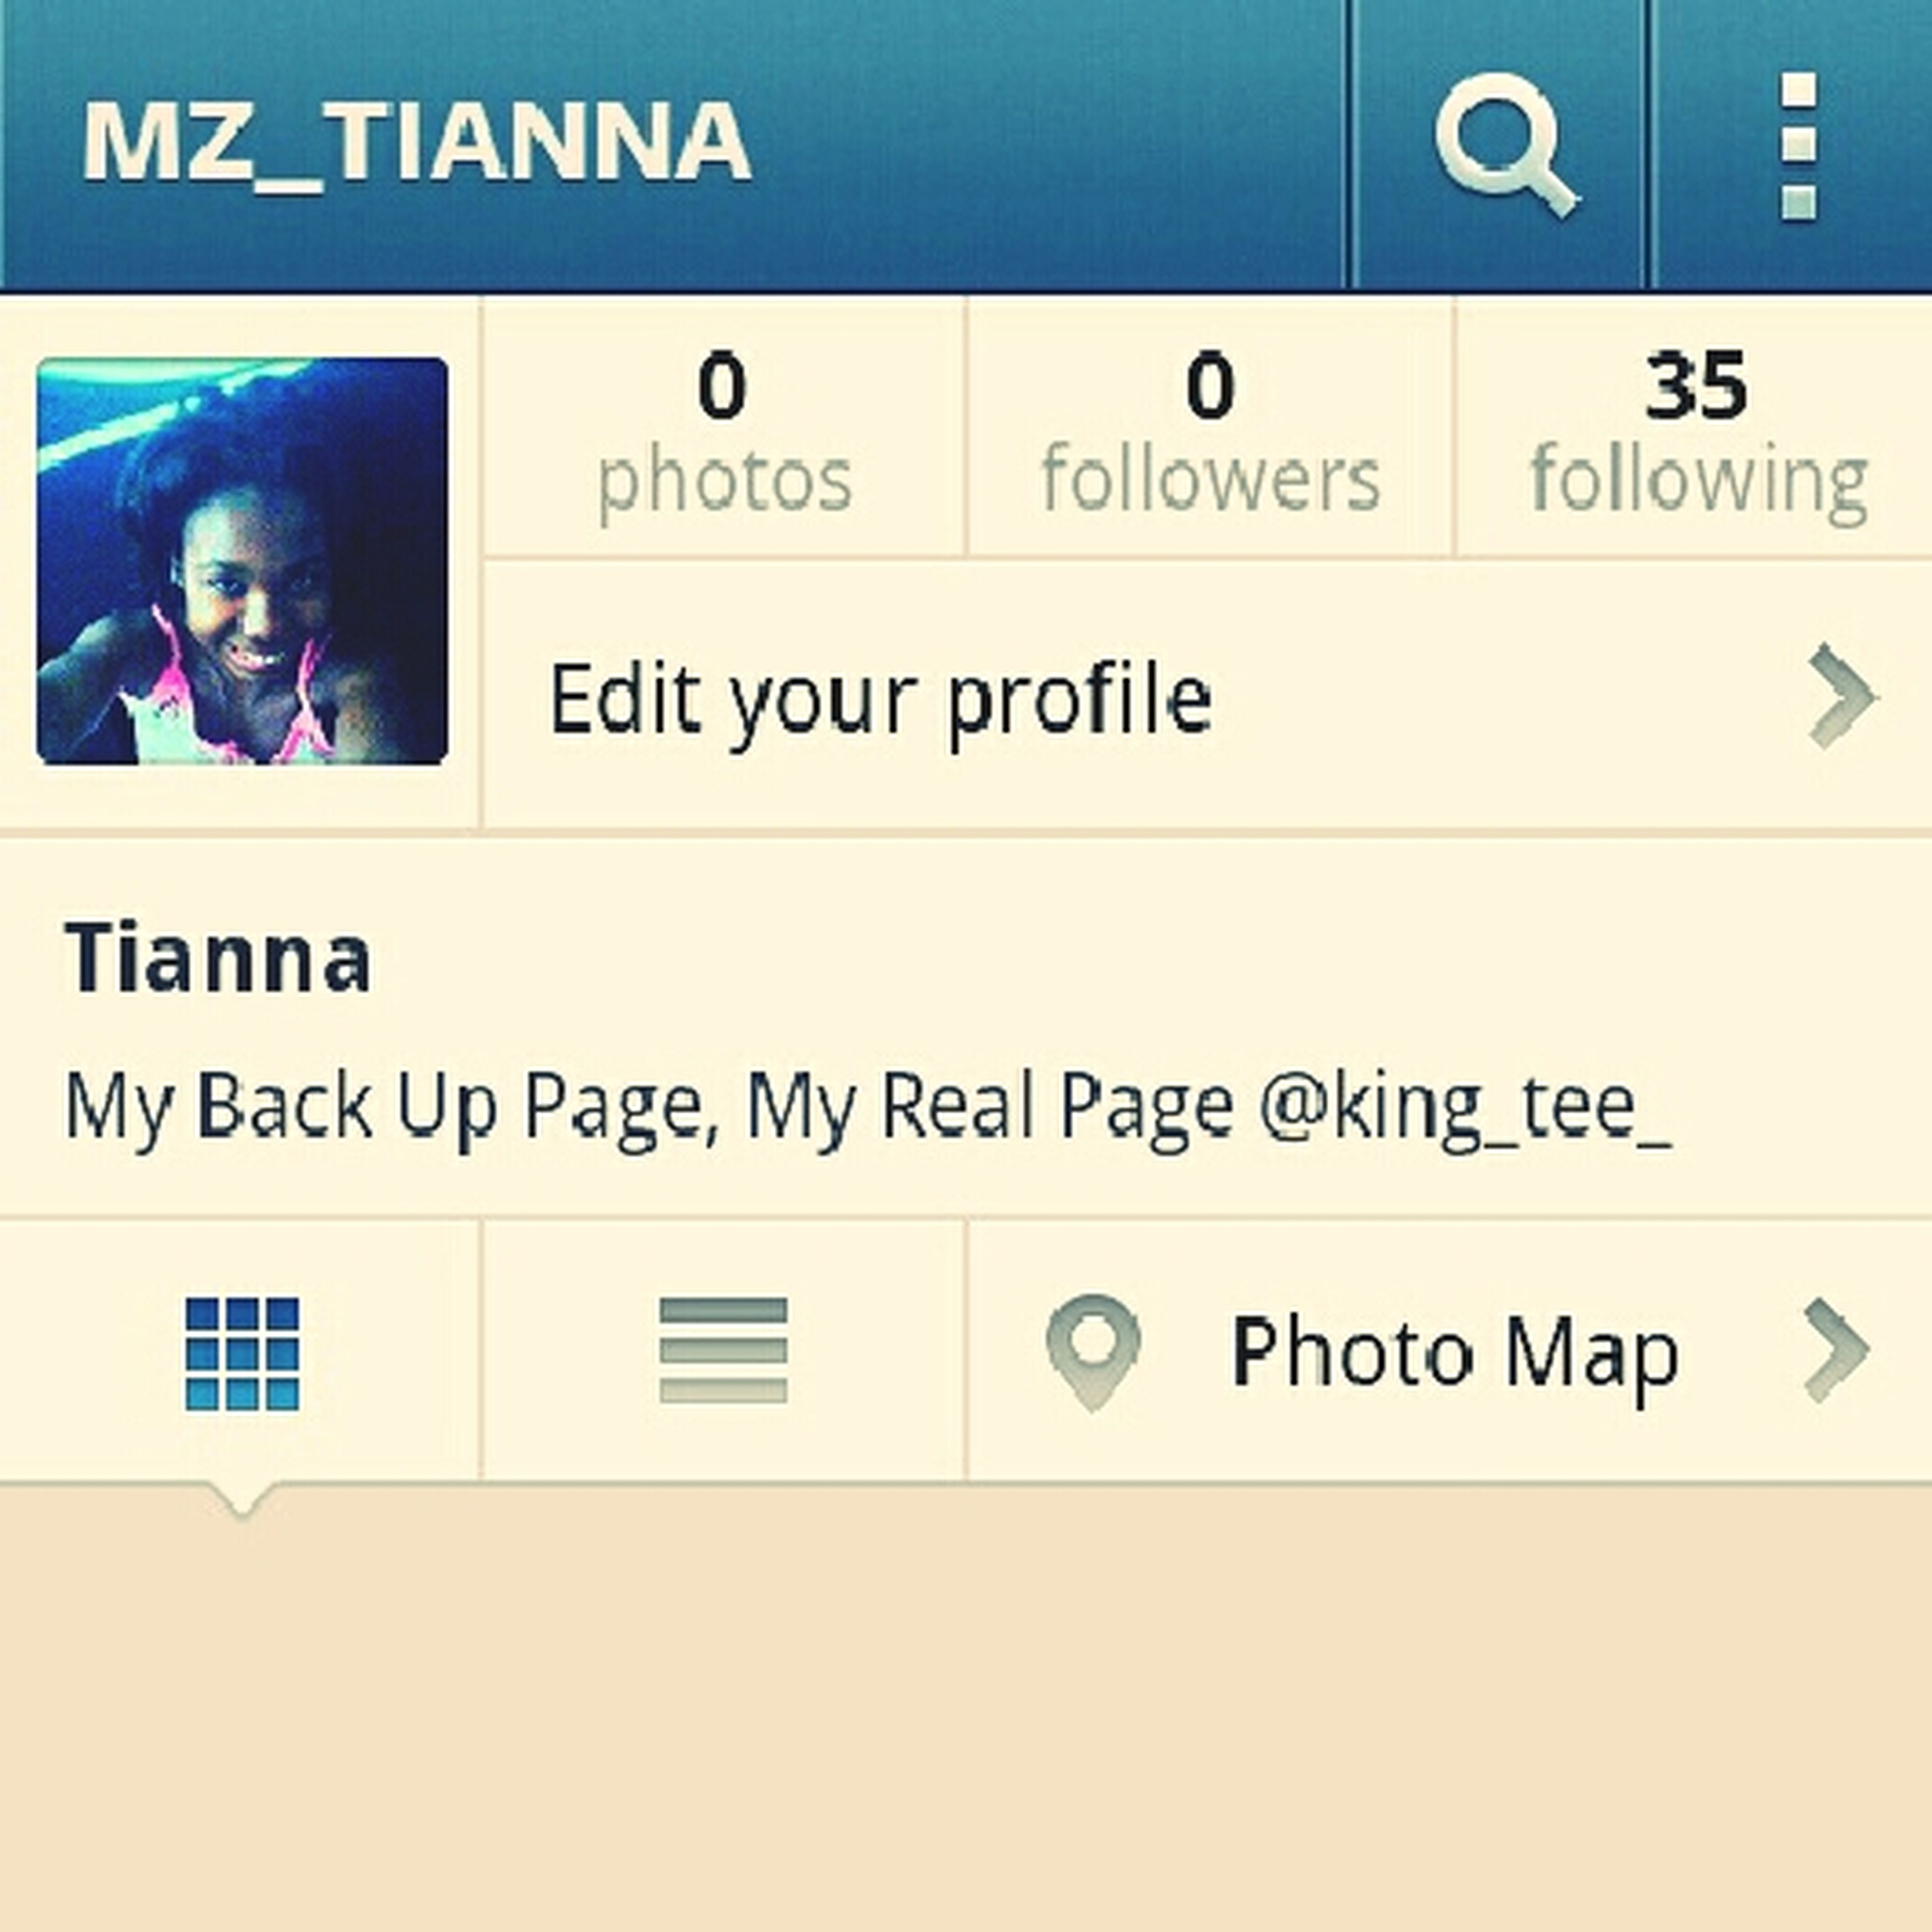 Follow My Back Up Page On Instagram